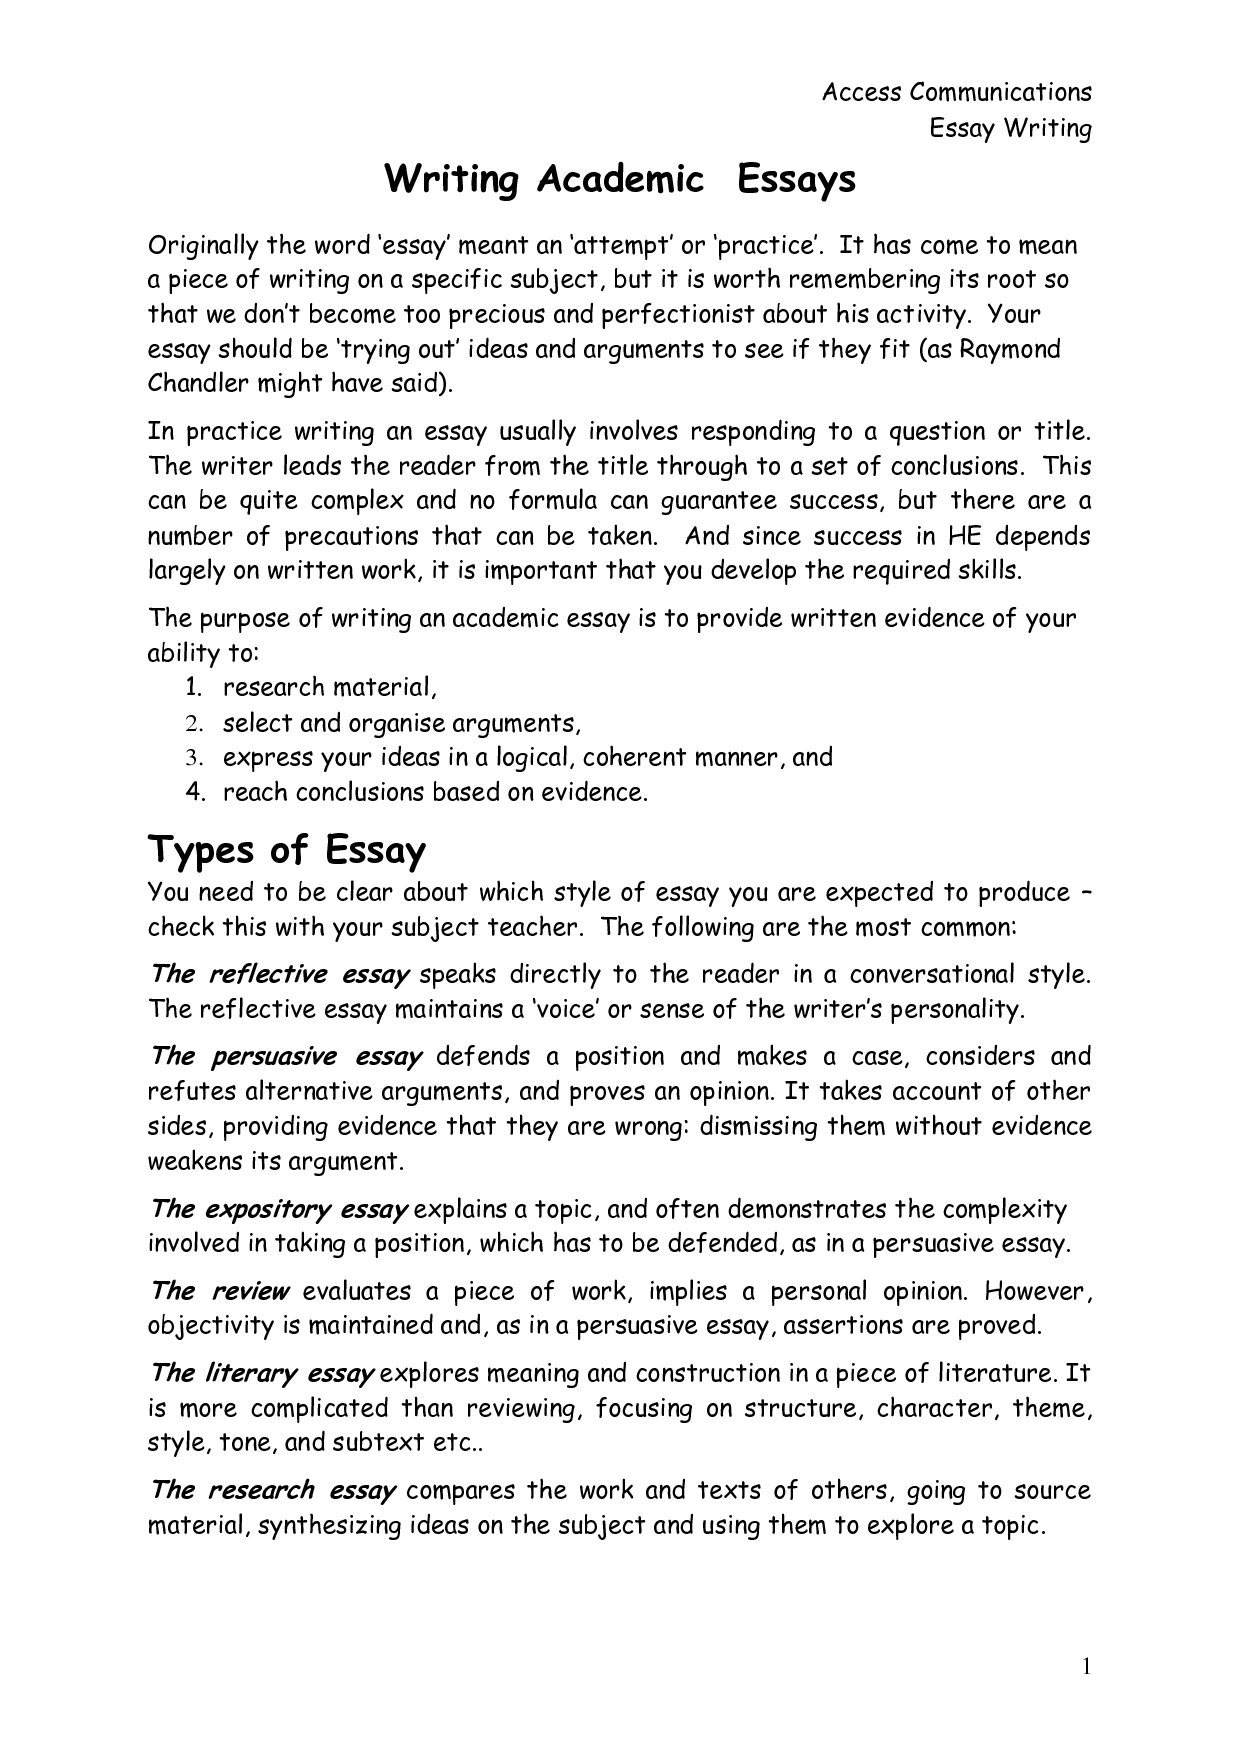 019 Write My Essay For Me Example Surprising College Application Free Online Uk Full